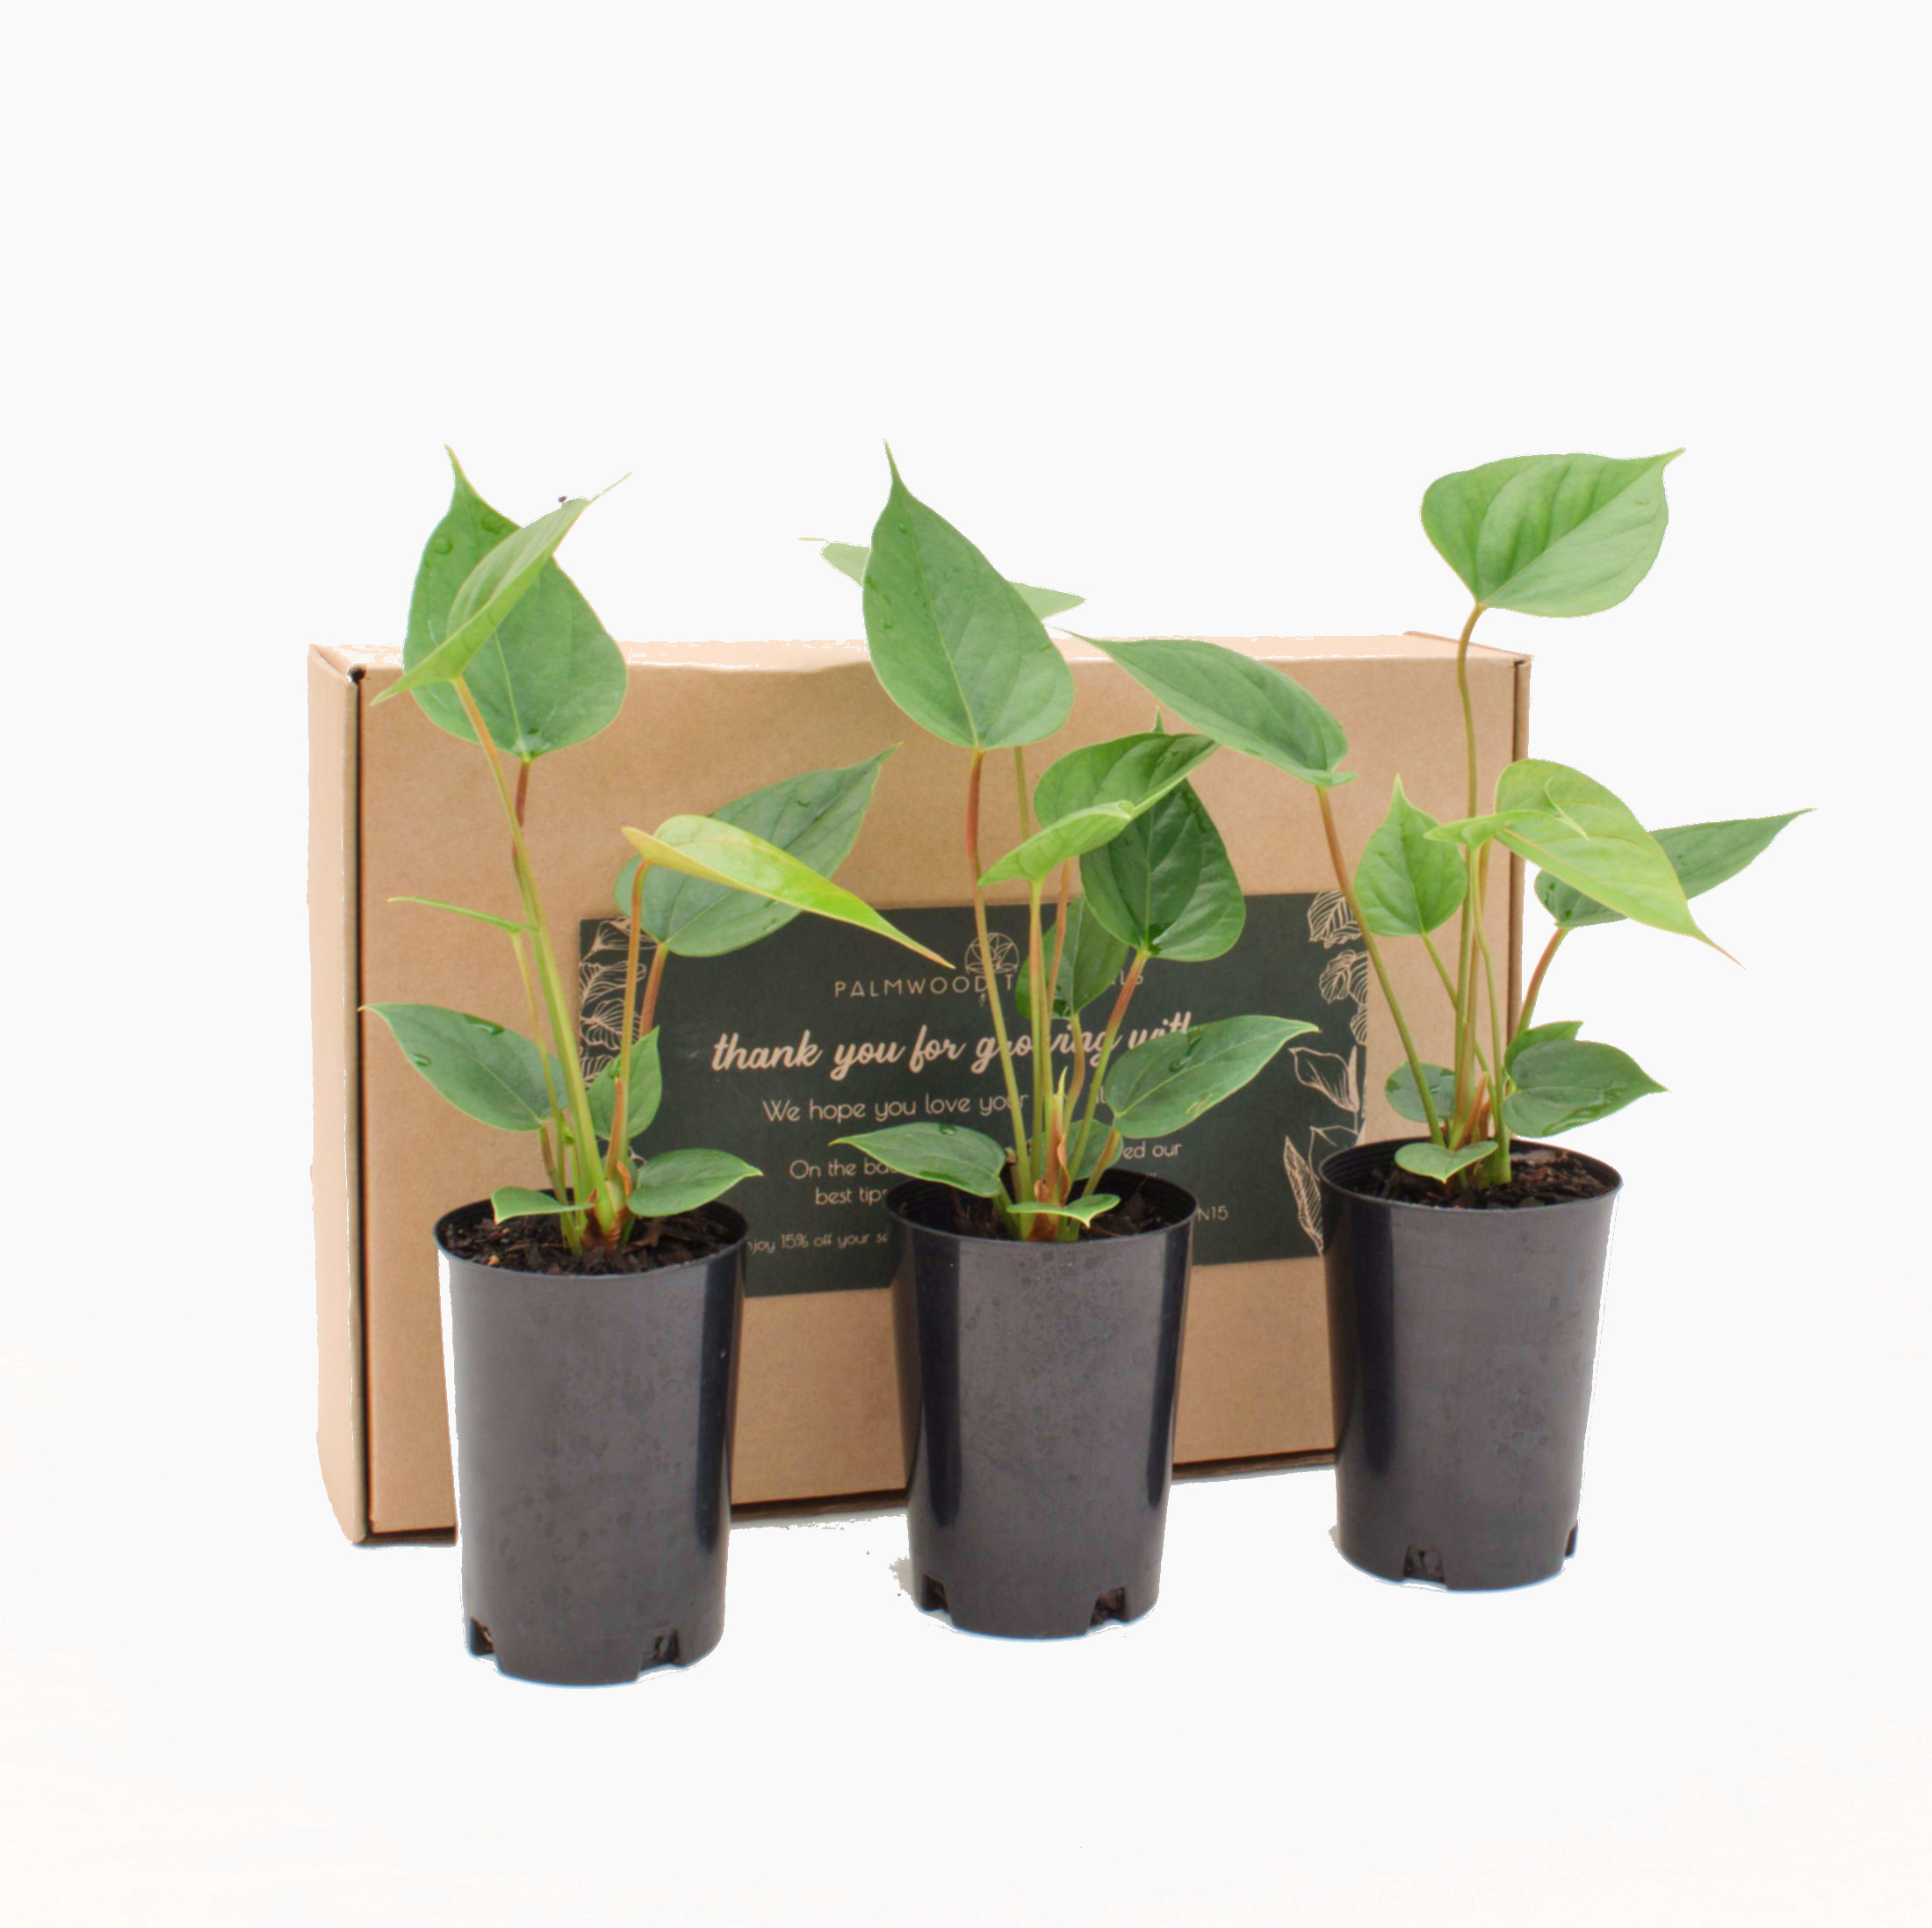 Palmwood Tropicals Online Plants - Three Plant Pack Angle